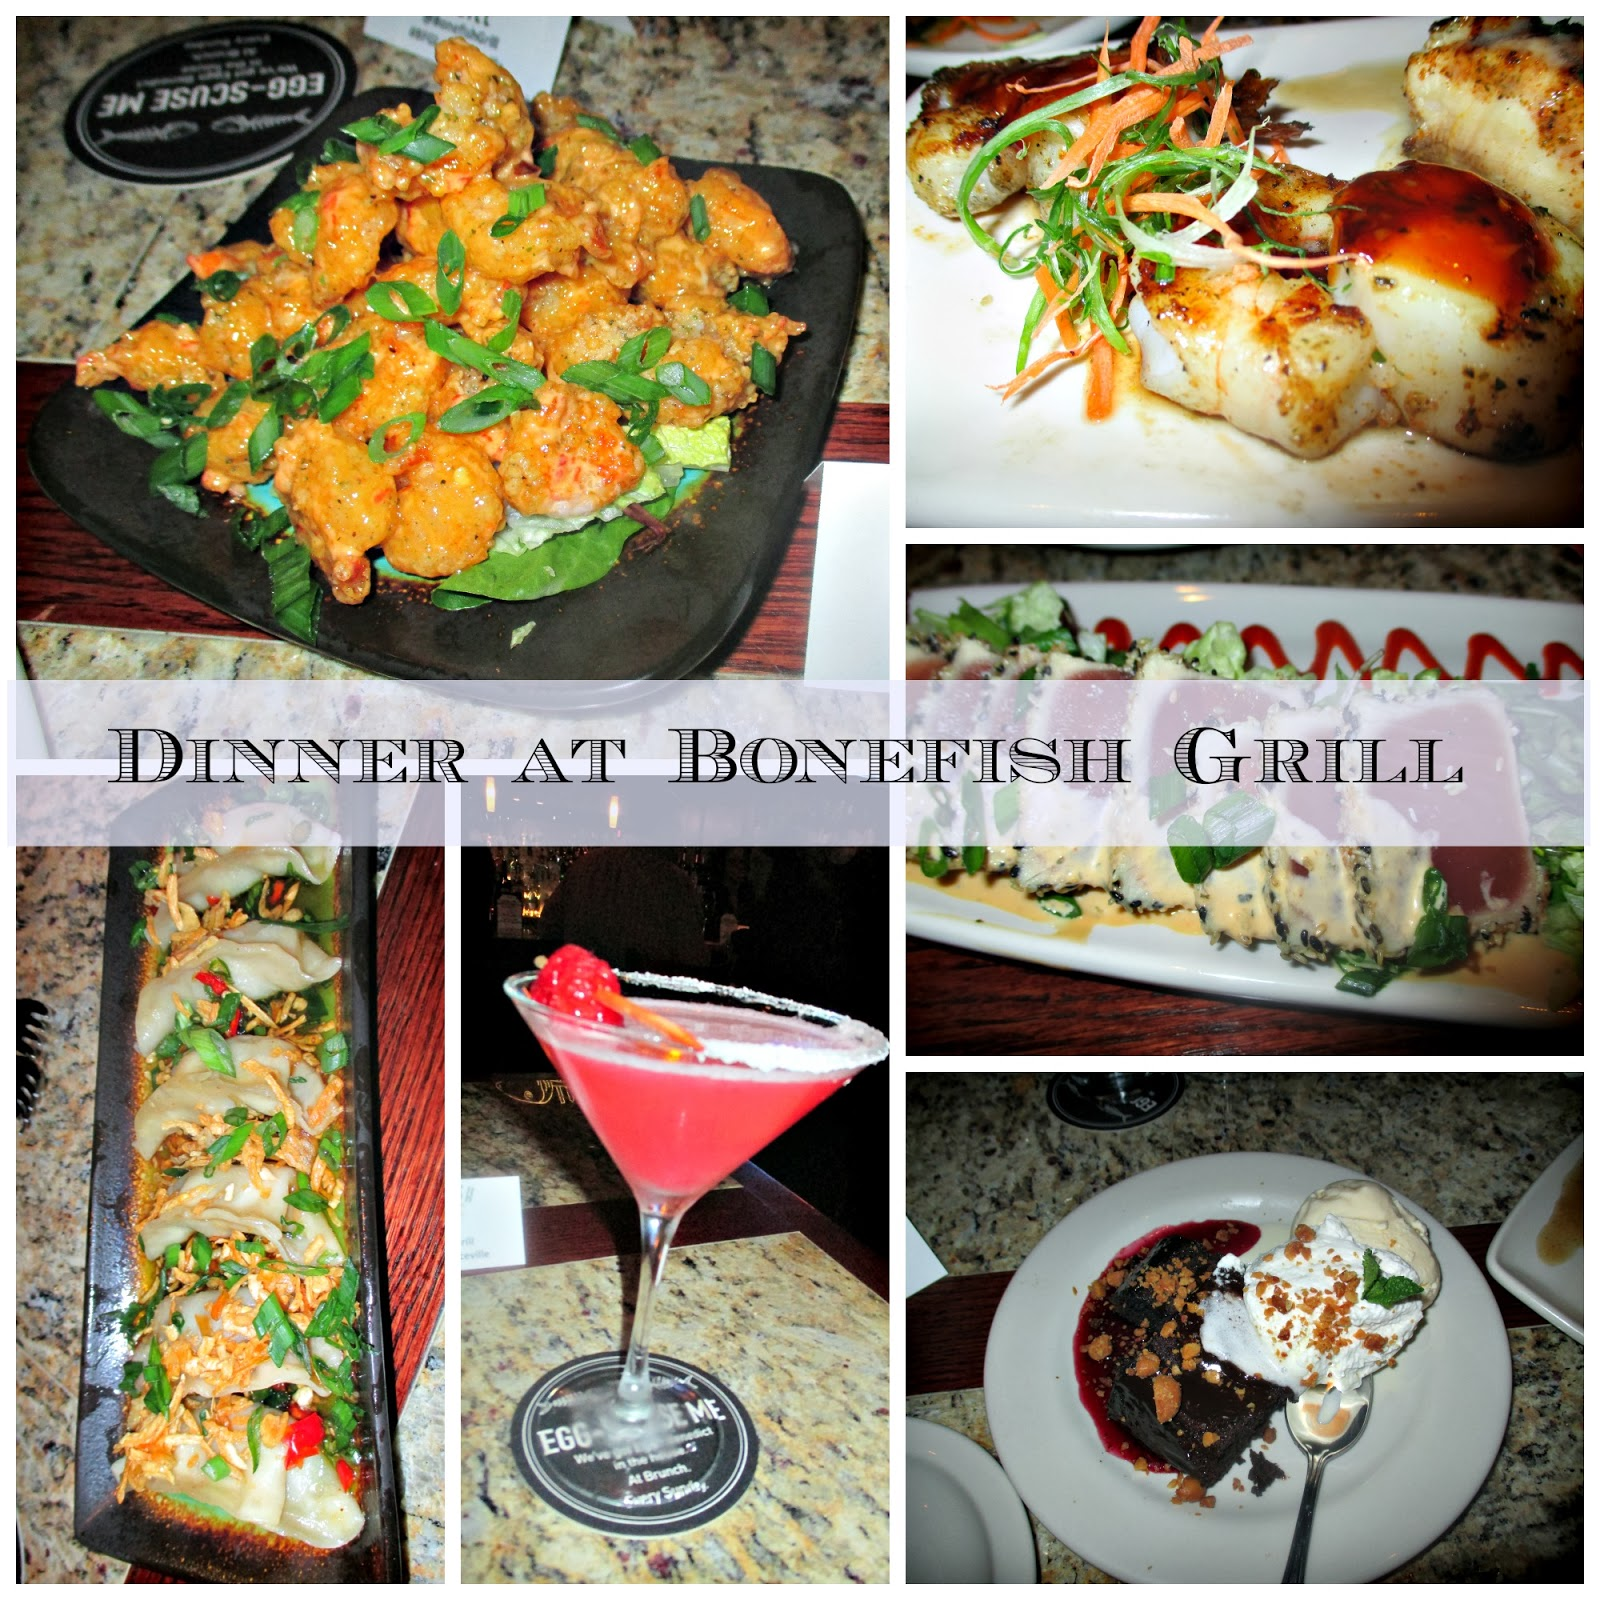 Bonefish Grill Lawrenceville NJ